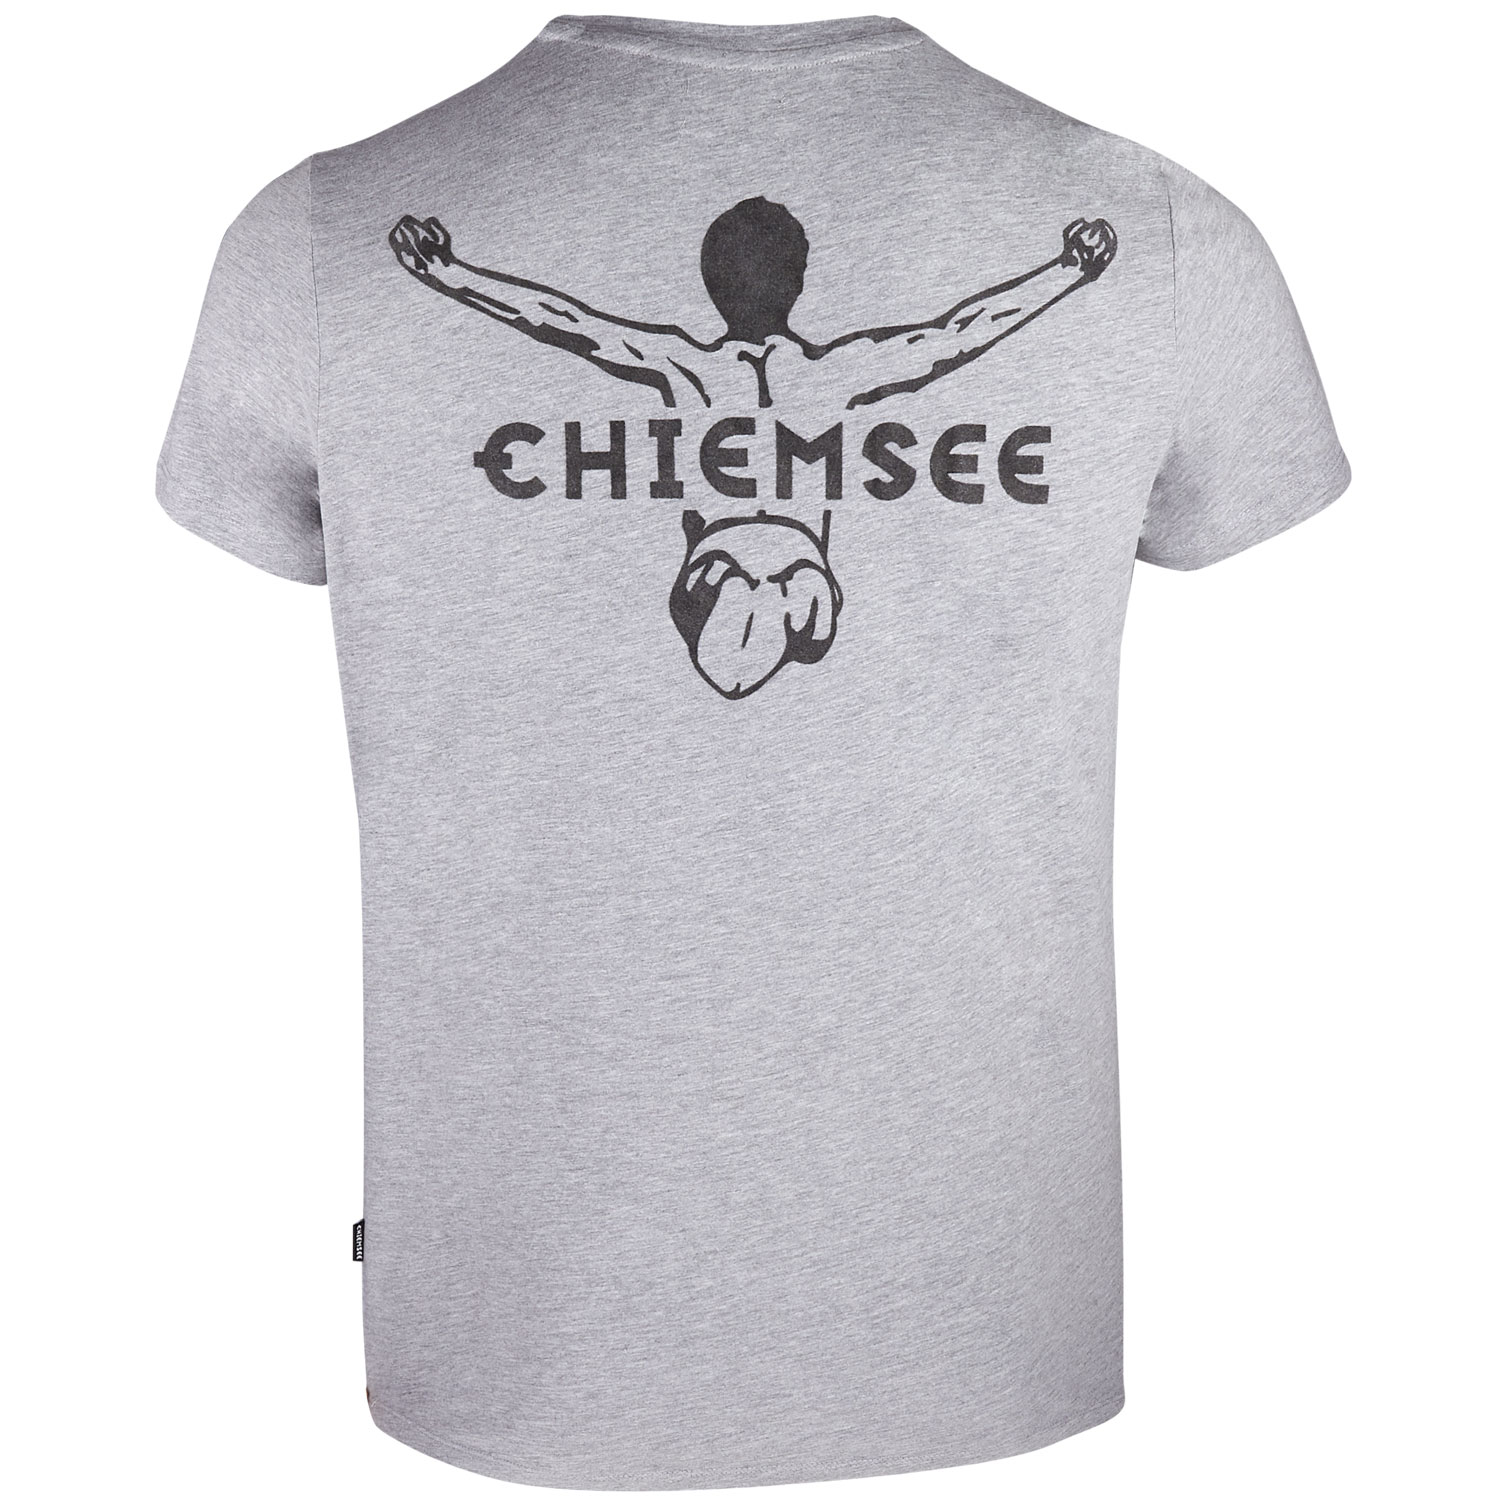 Chiemsee Herren Shirt Manhatten, T-Shirt – Bild 5